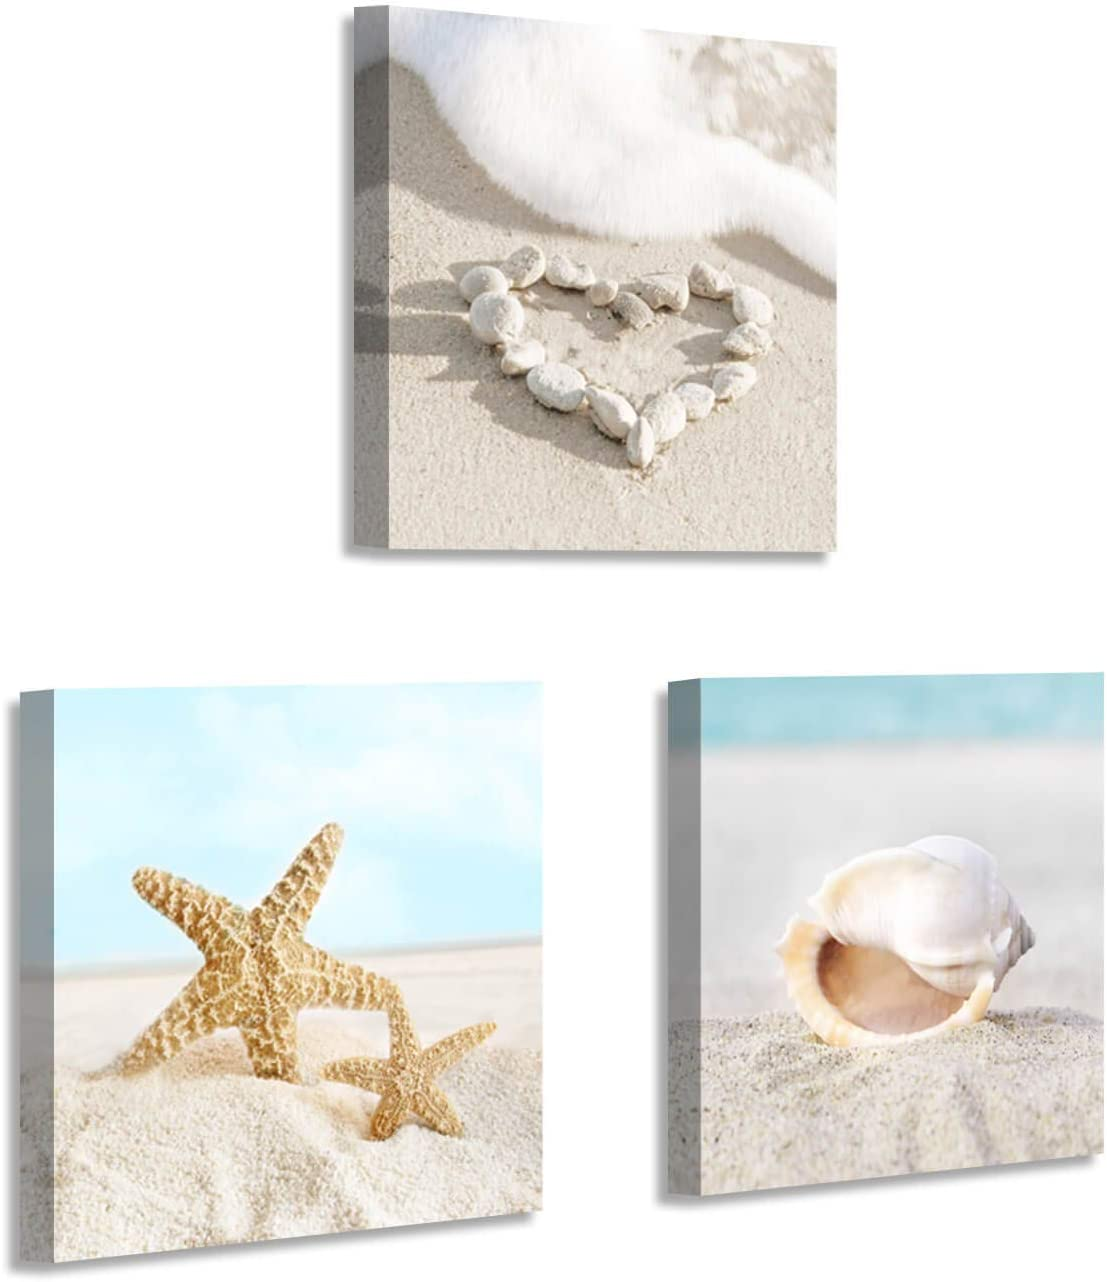 Beach Canvas Wall Art Picture: Seashell and Starfish on Soft Sandybeach Painting Artwork for Home Decor (12'' x 12'' x 3 Panels)